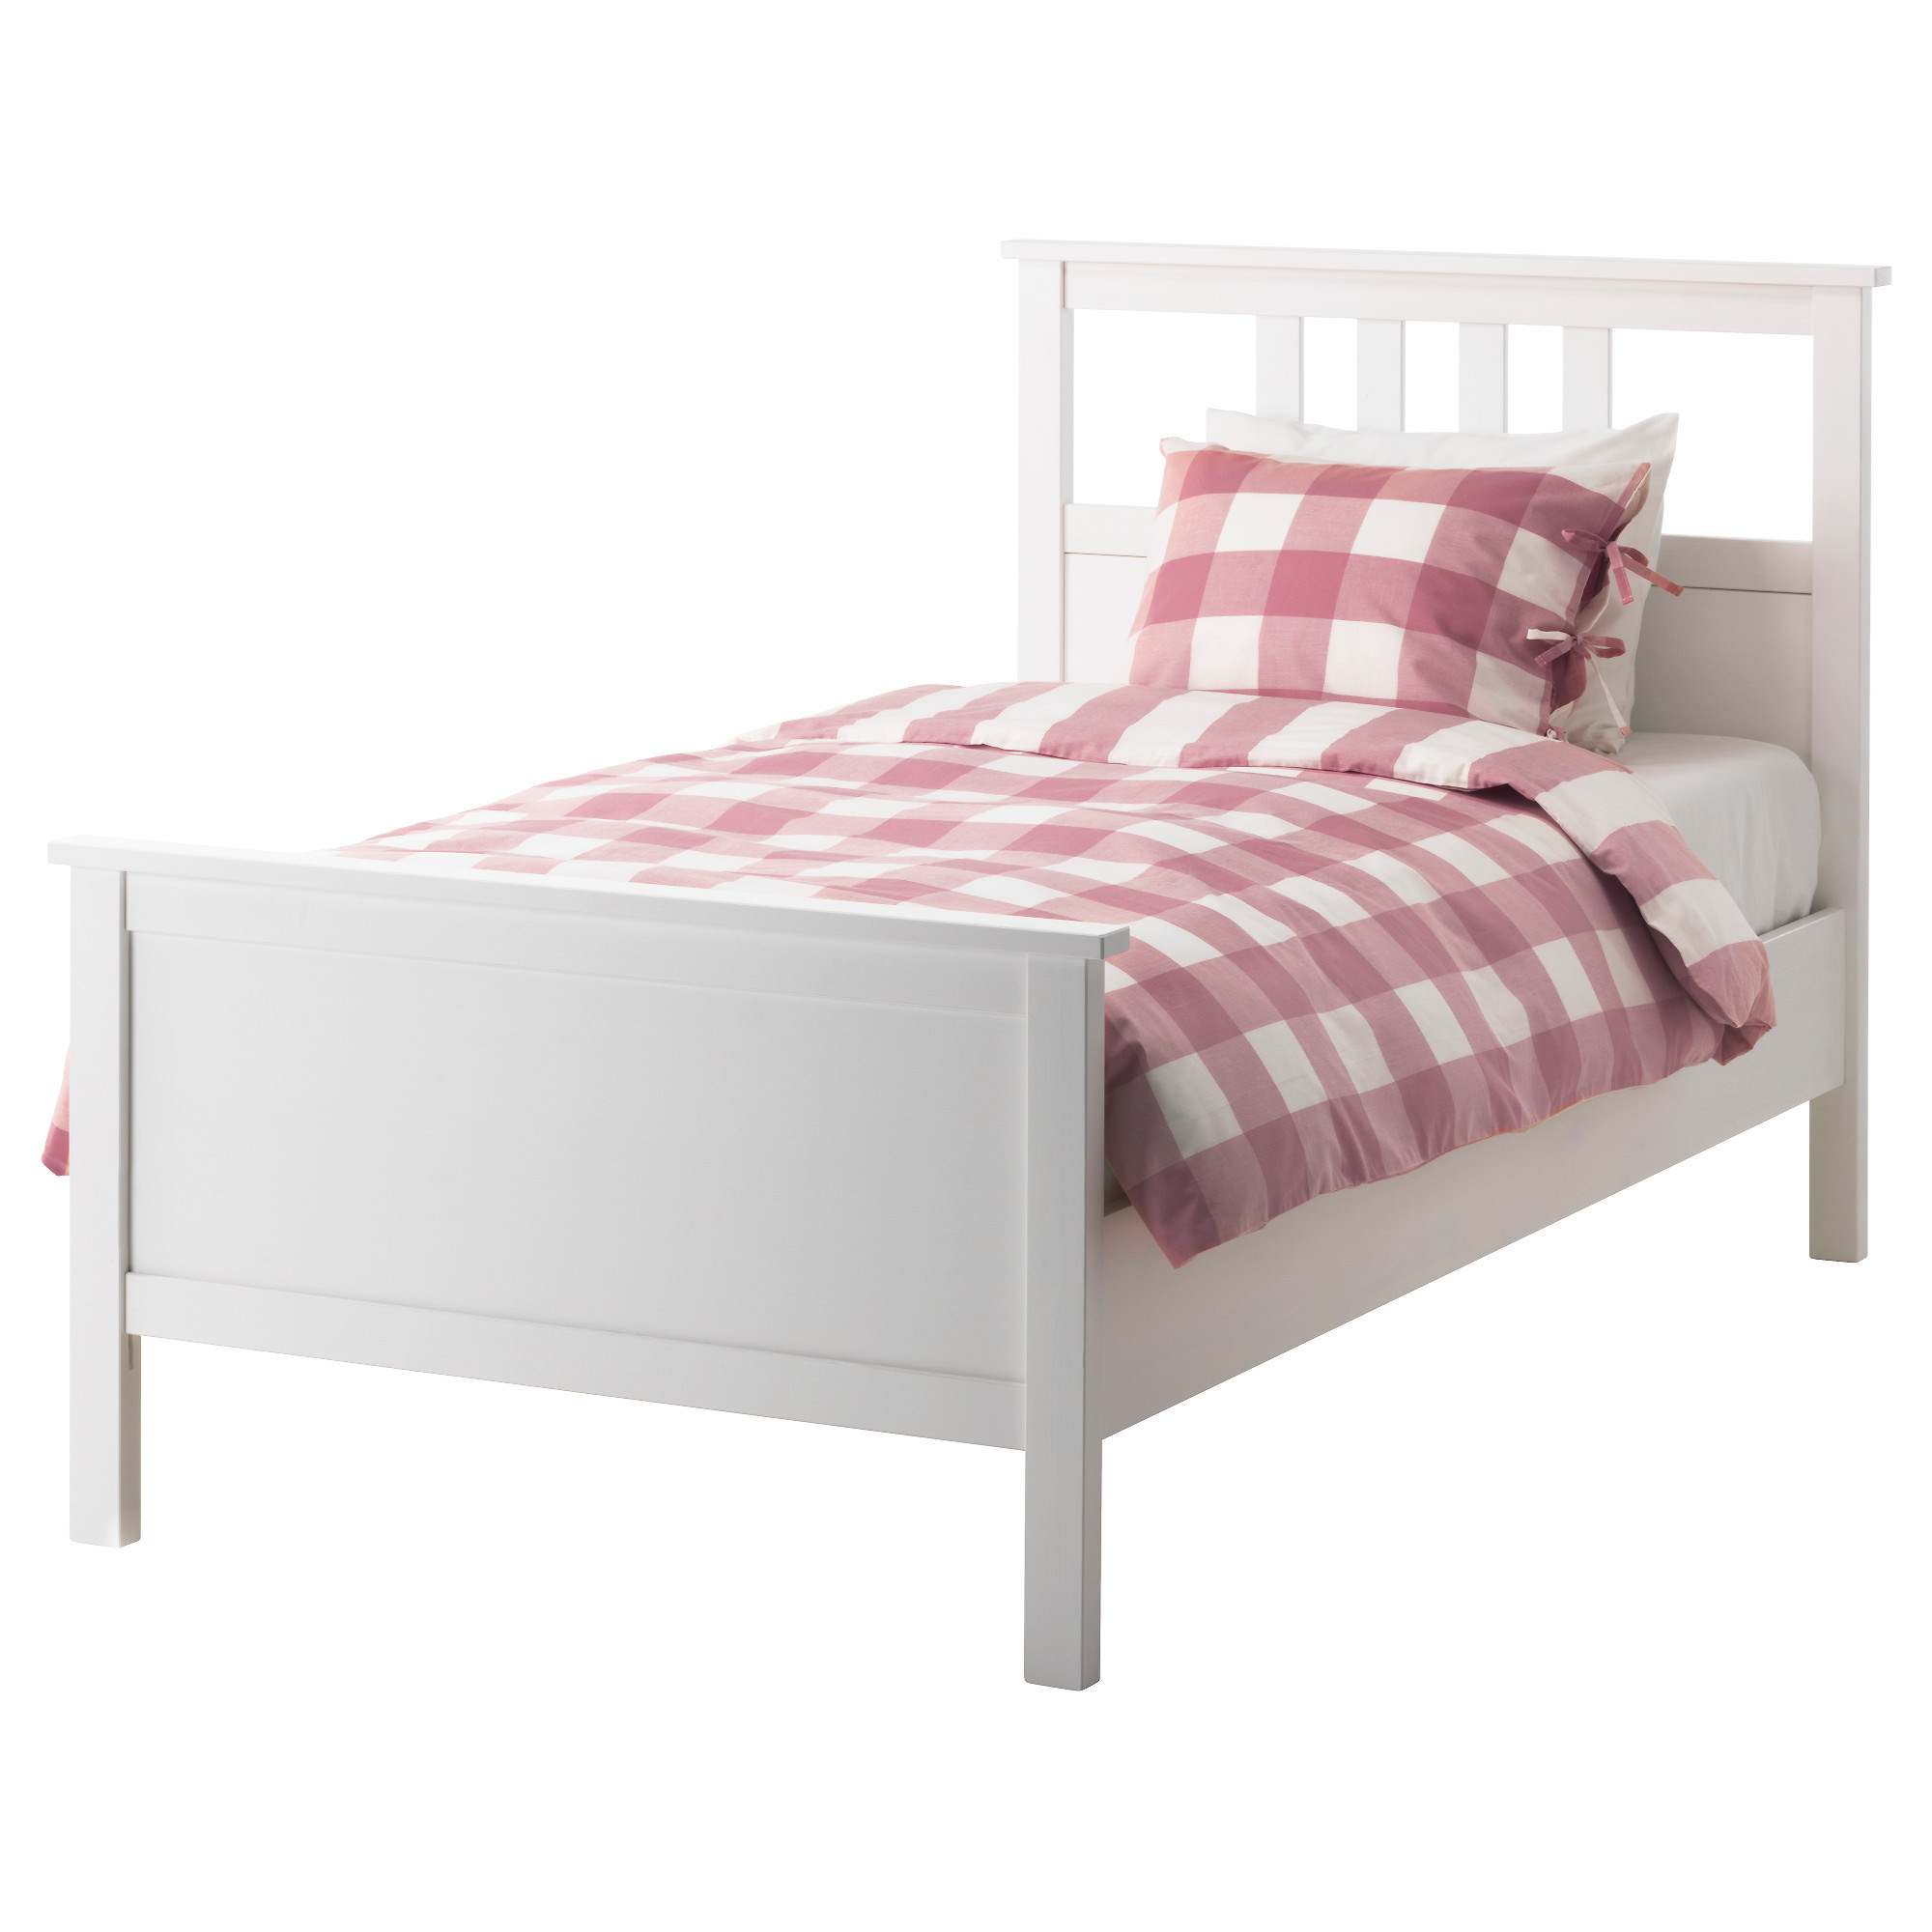 Twin beds frames efficient twin bed frames for interiors